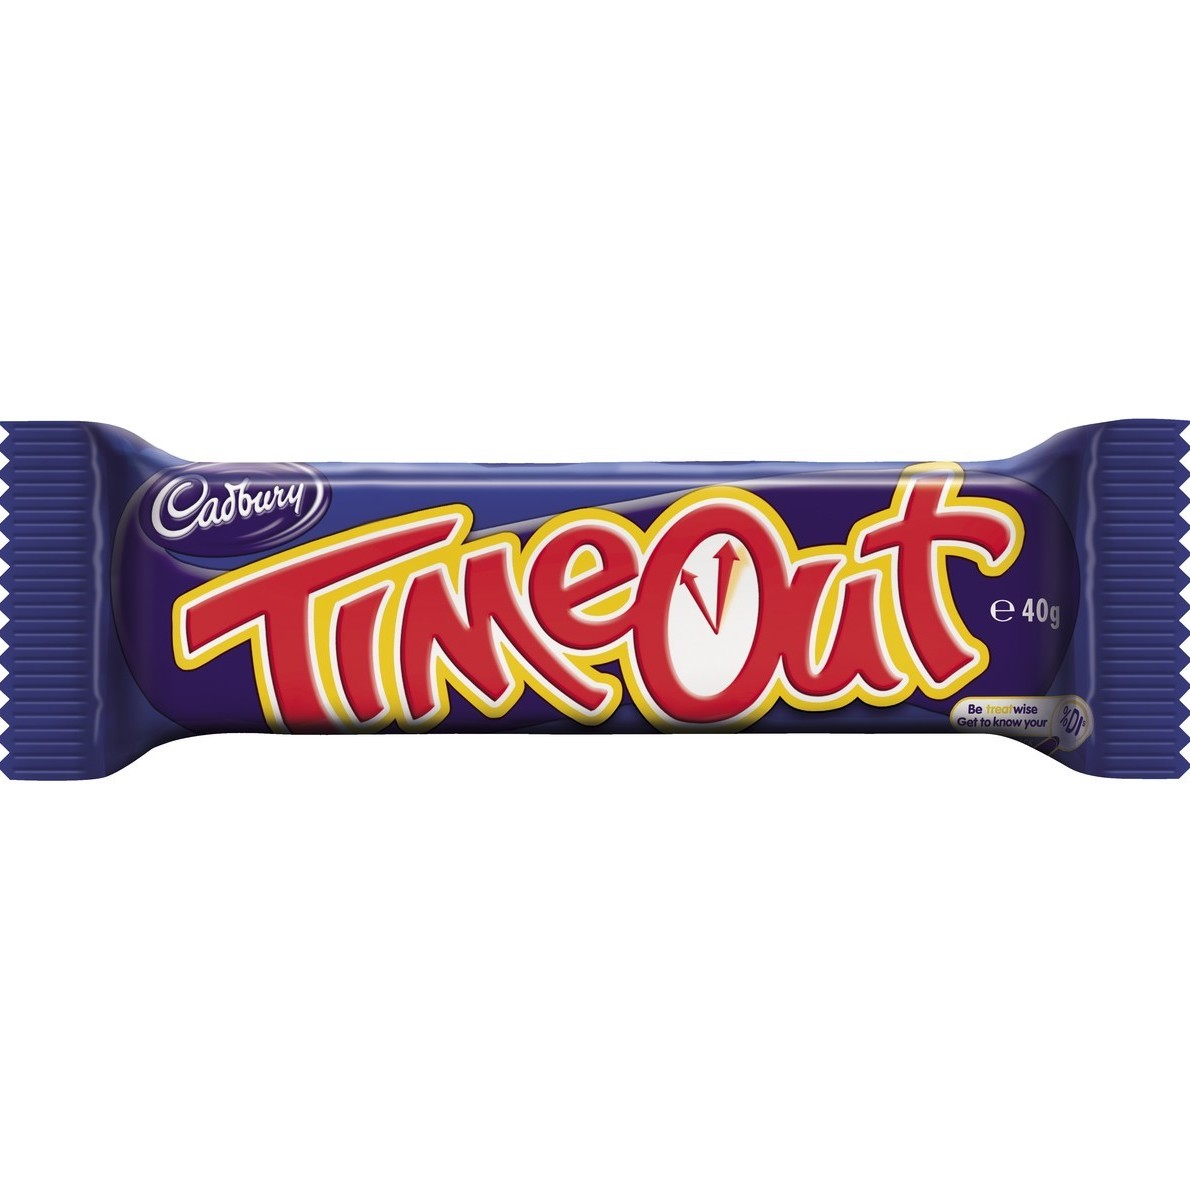 11848943894558 16 Childhood Chocolate Treats You've Completely Forgotten About!